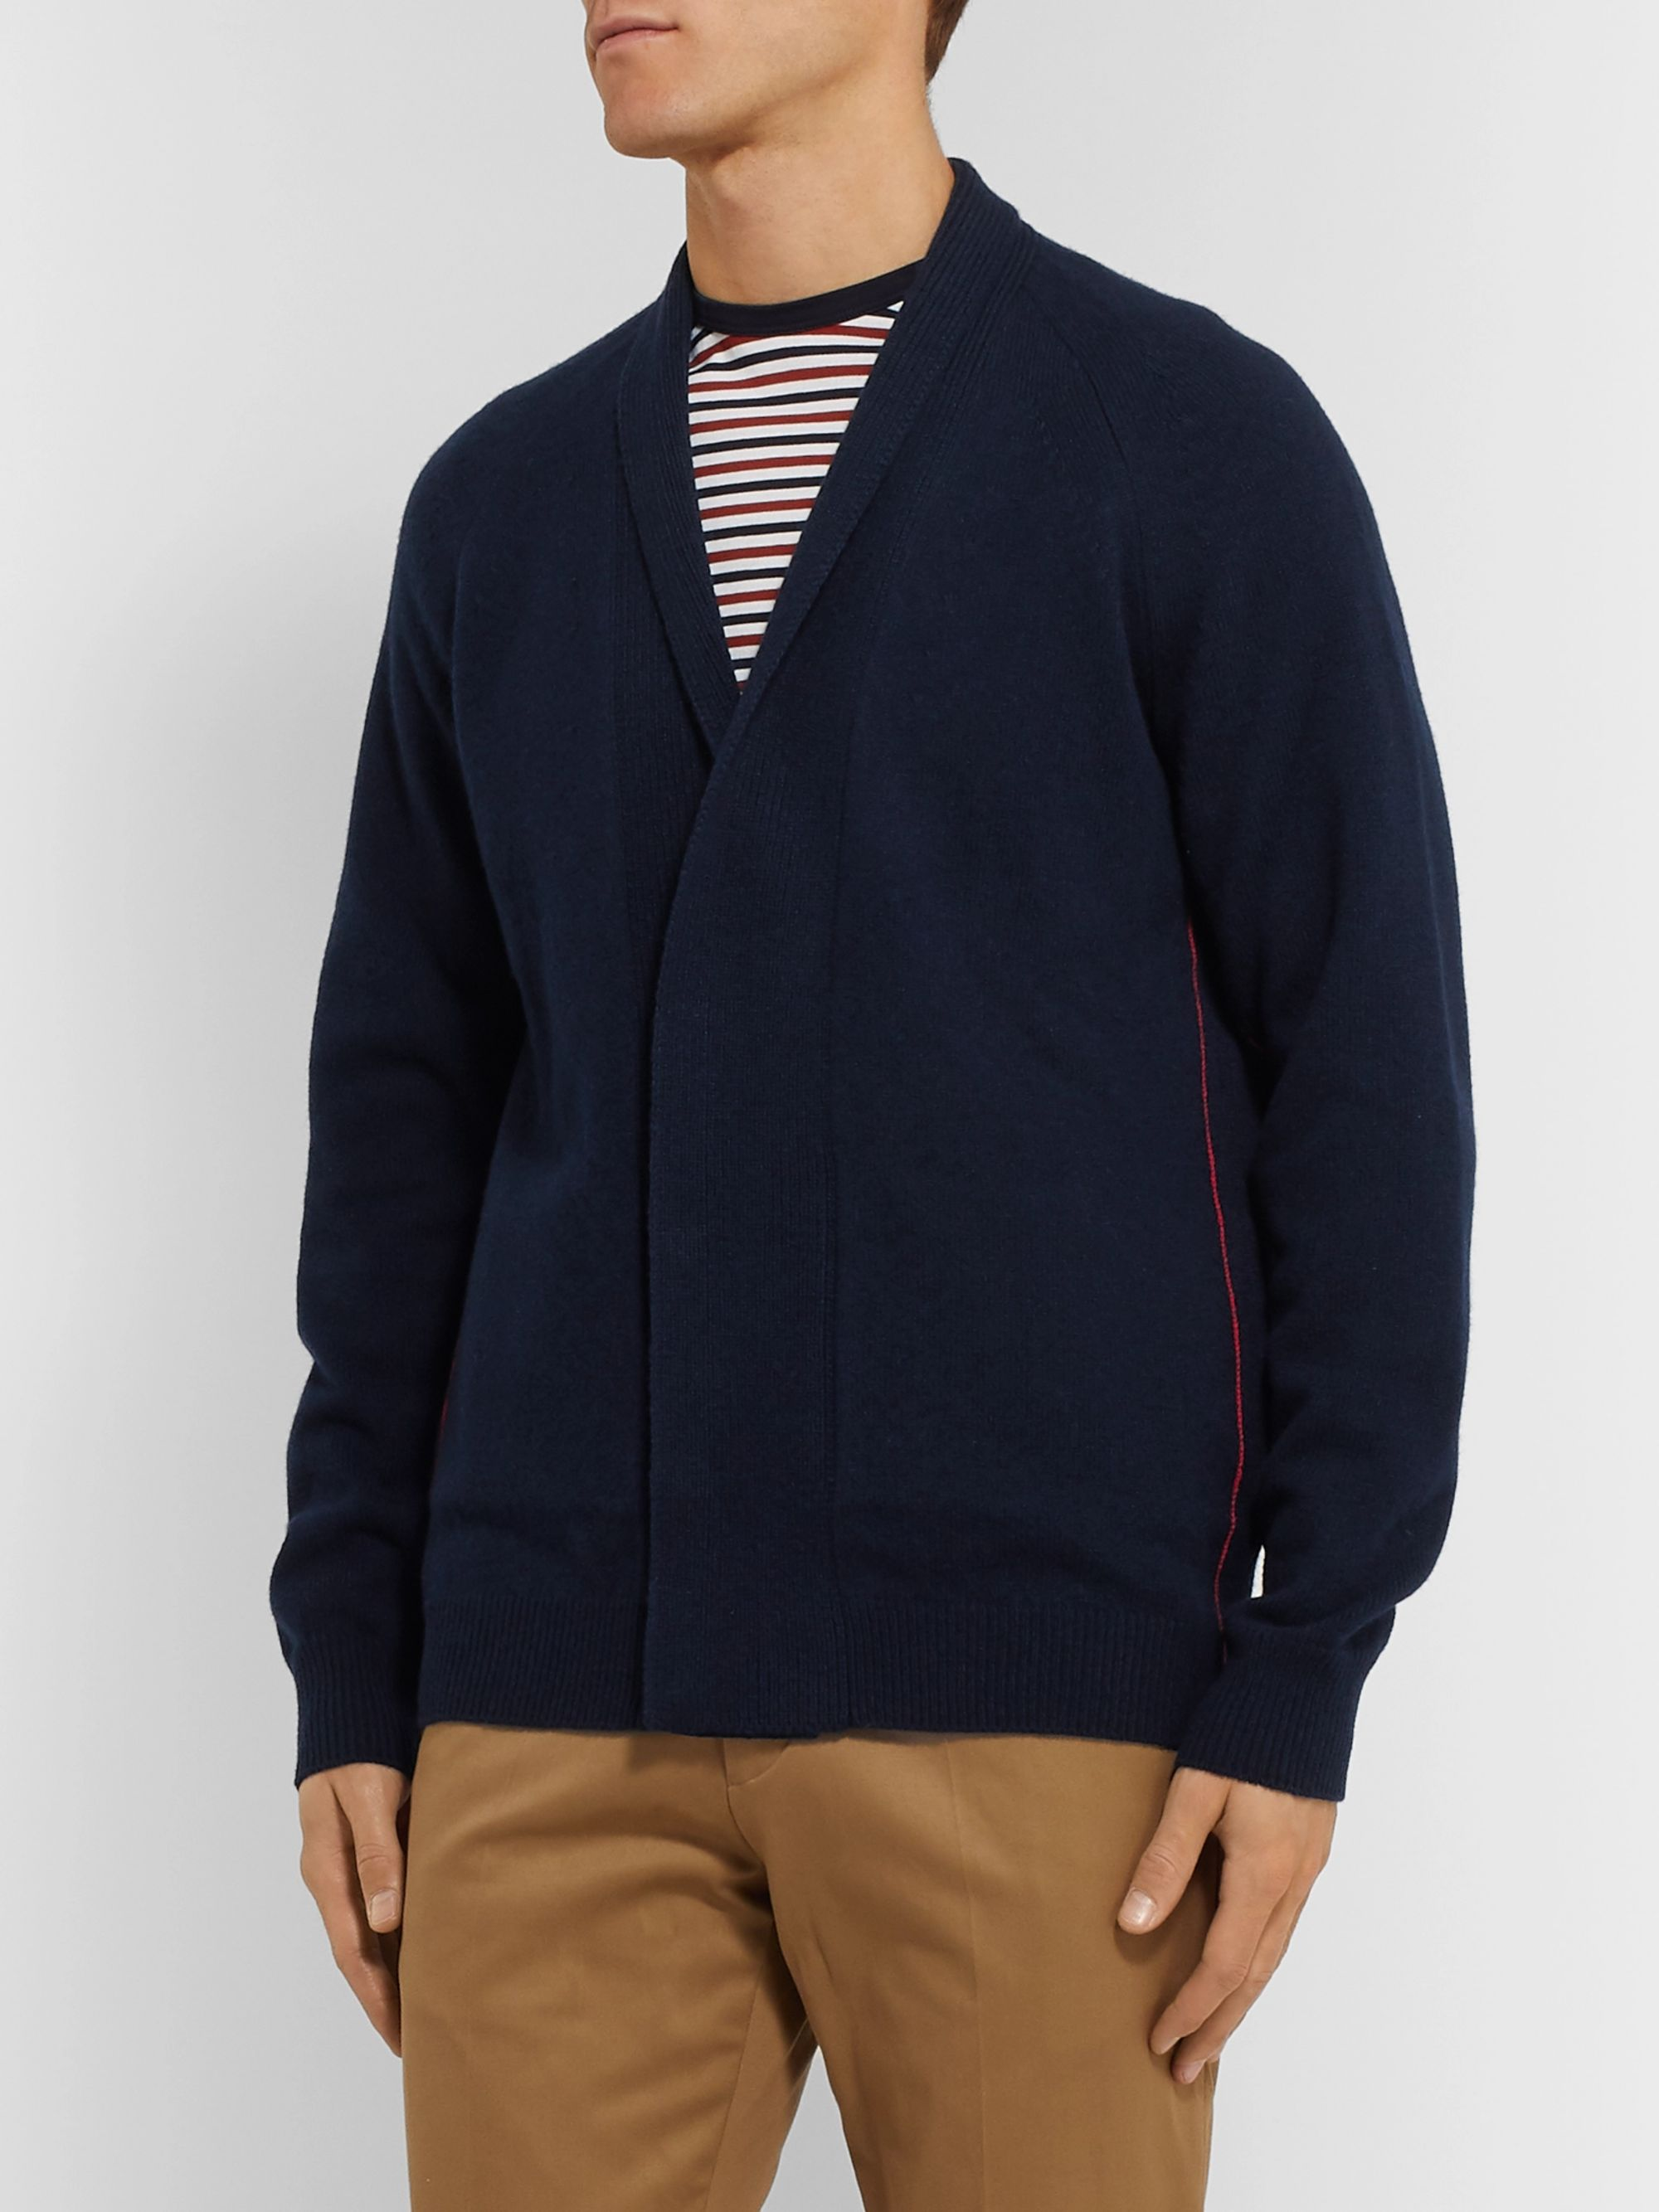 Paul Smith Shawl-Collar Striped Wool Cardigan